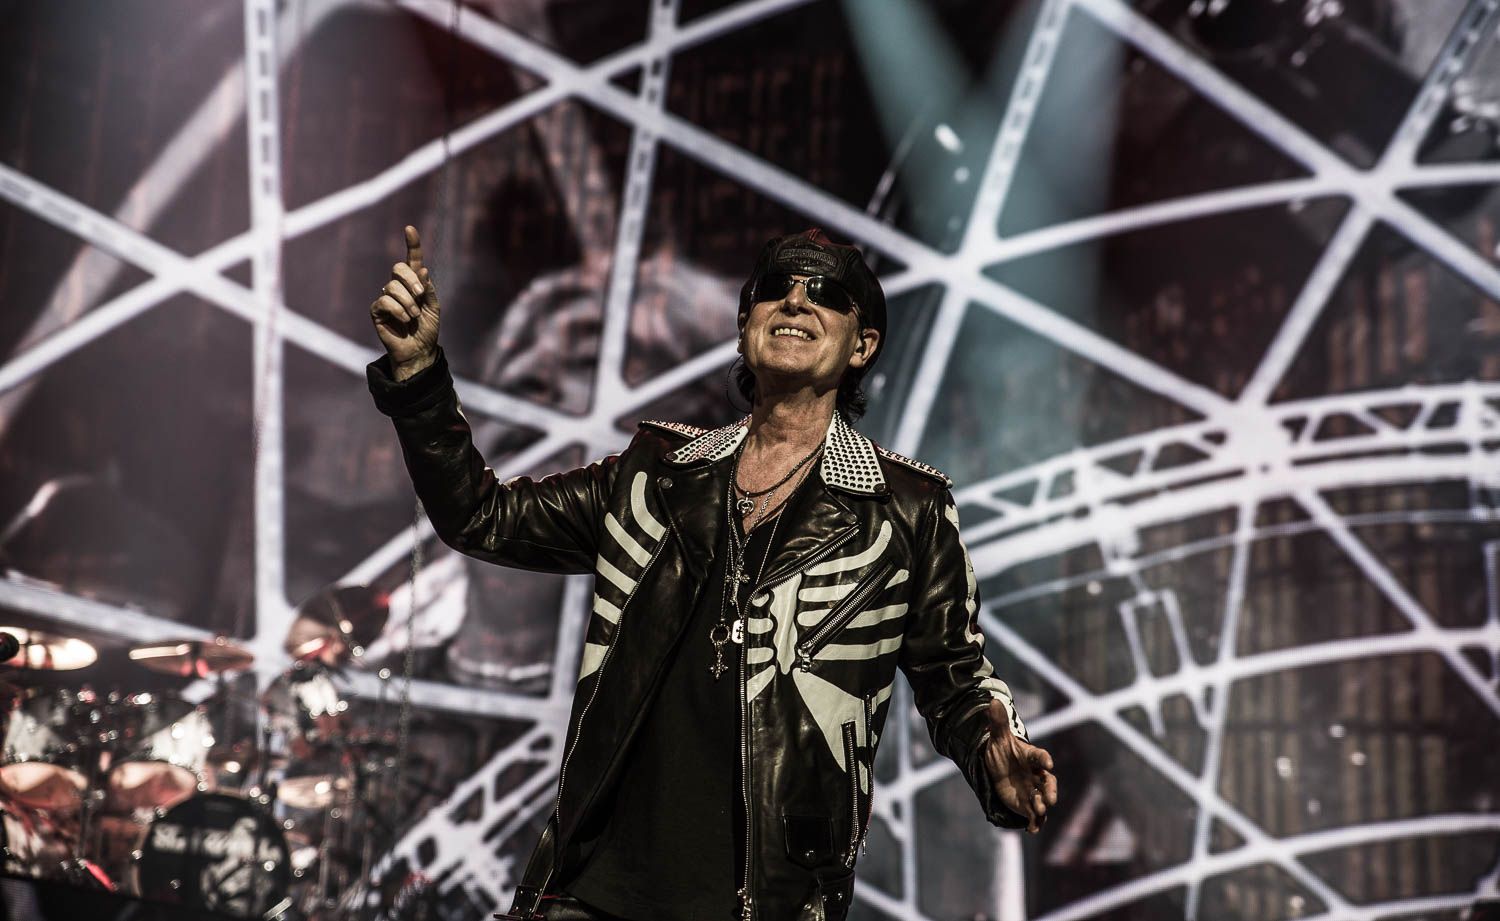 11222017_Scorpions@OS_Willy_Larsen_Photography_dh (39 of 41)